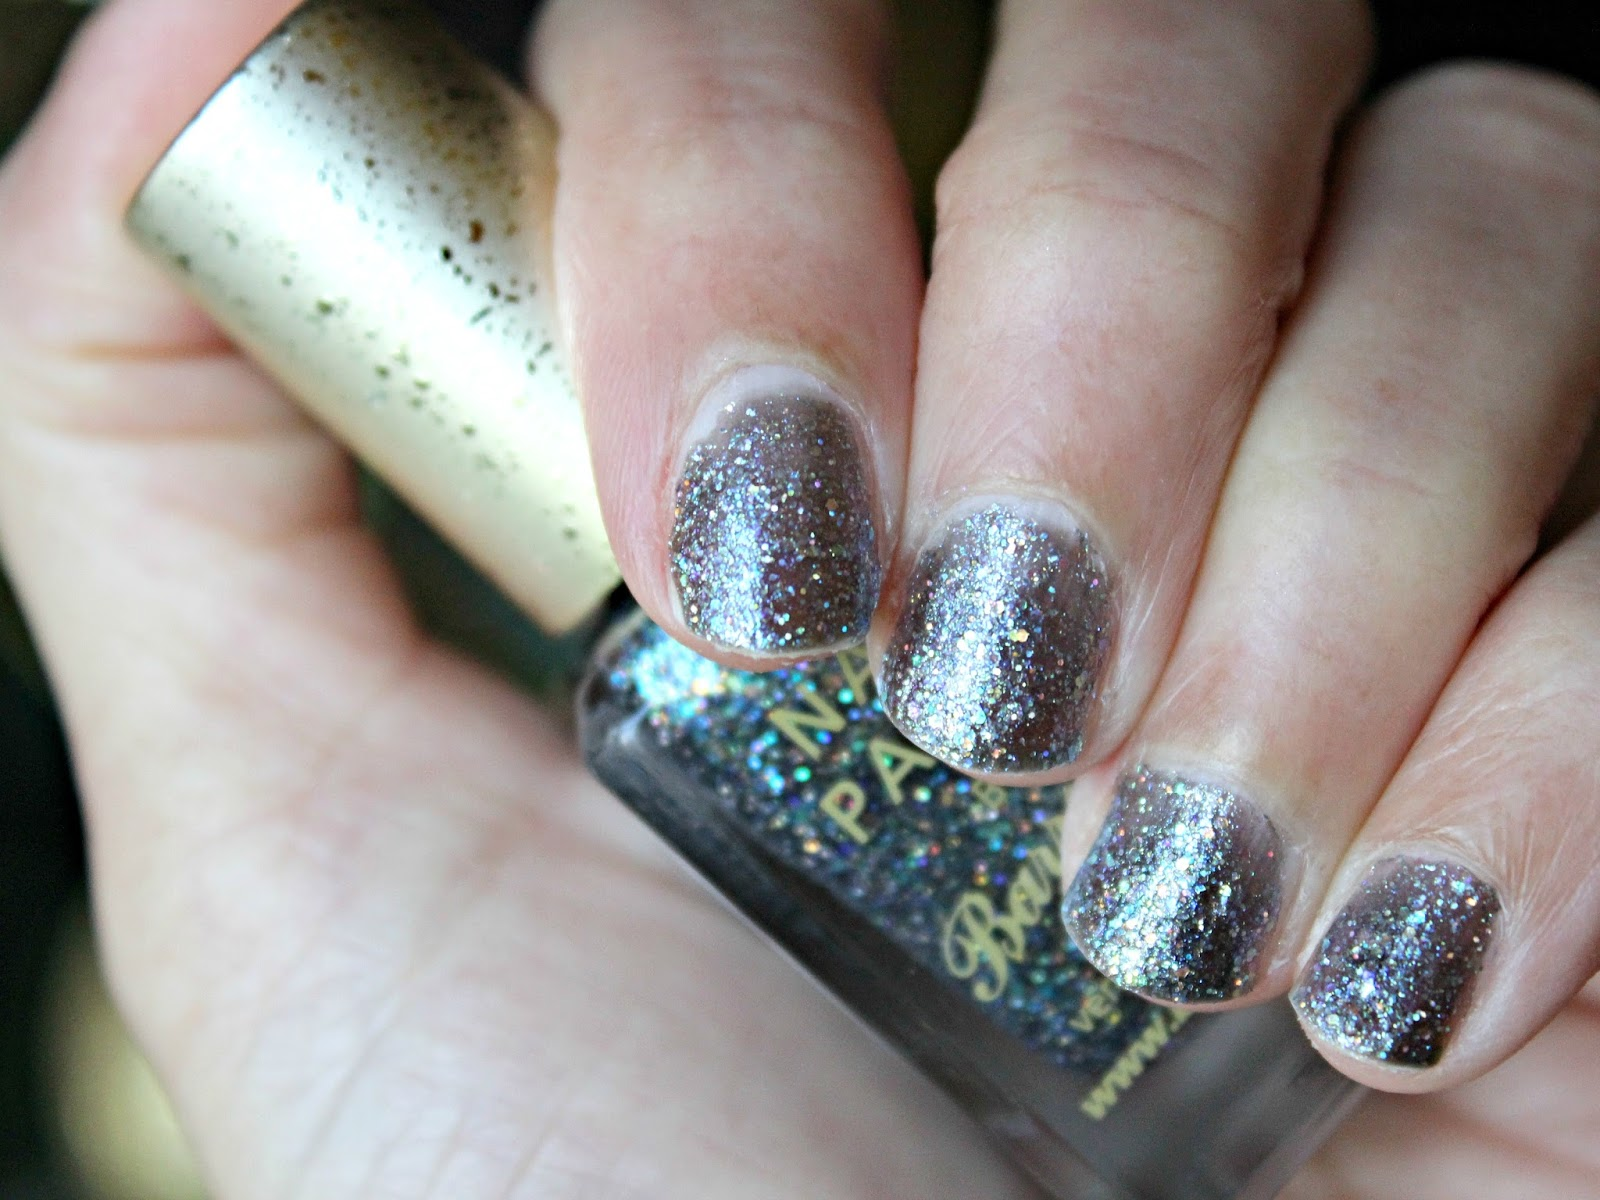 A picture of the Barry M Glitterati Nail Paint - Rockstar